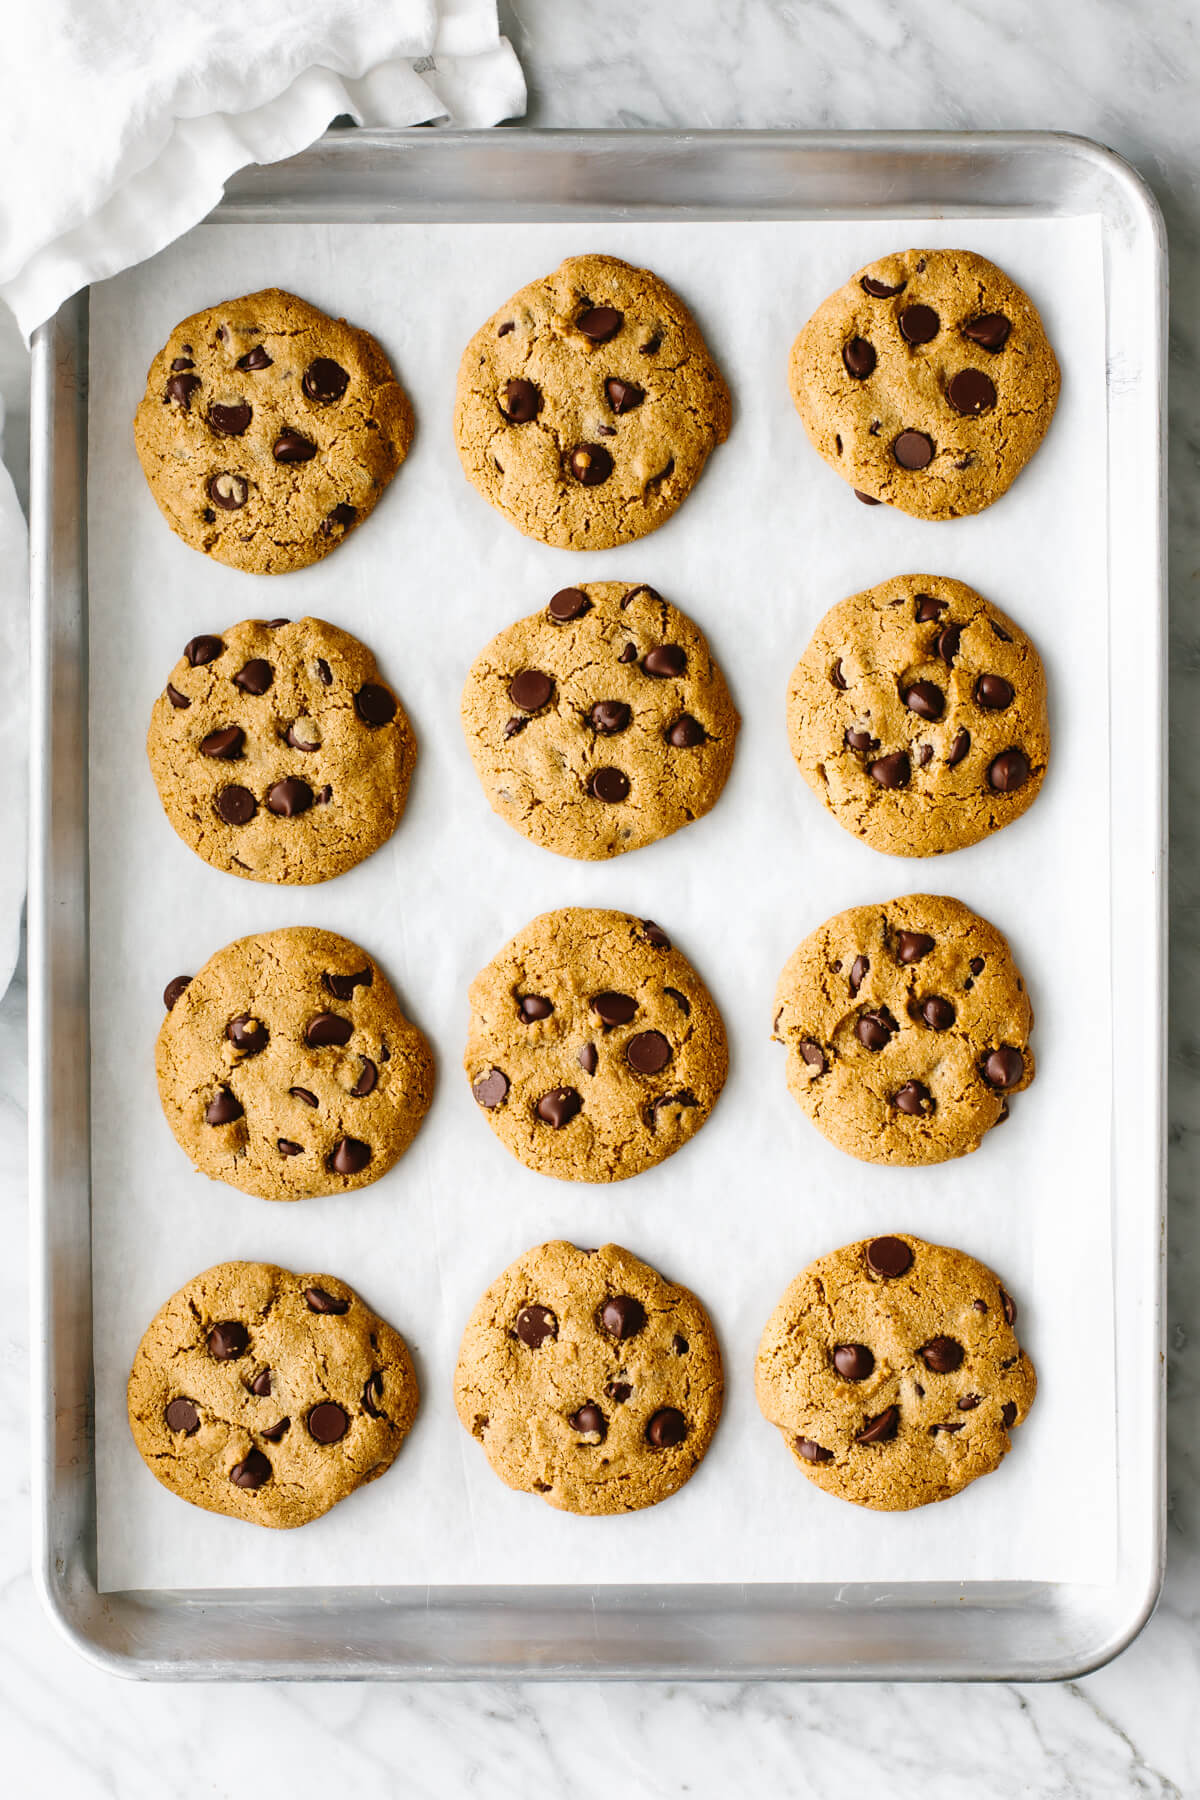 A metal sheet pan with gluten-free chocolate chip cookies lined up.